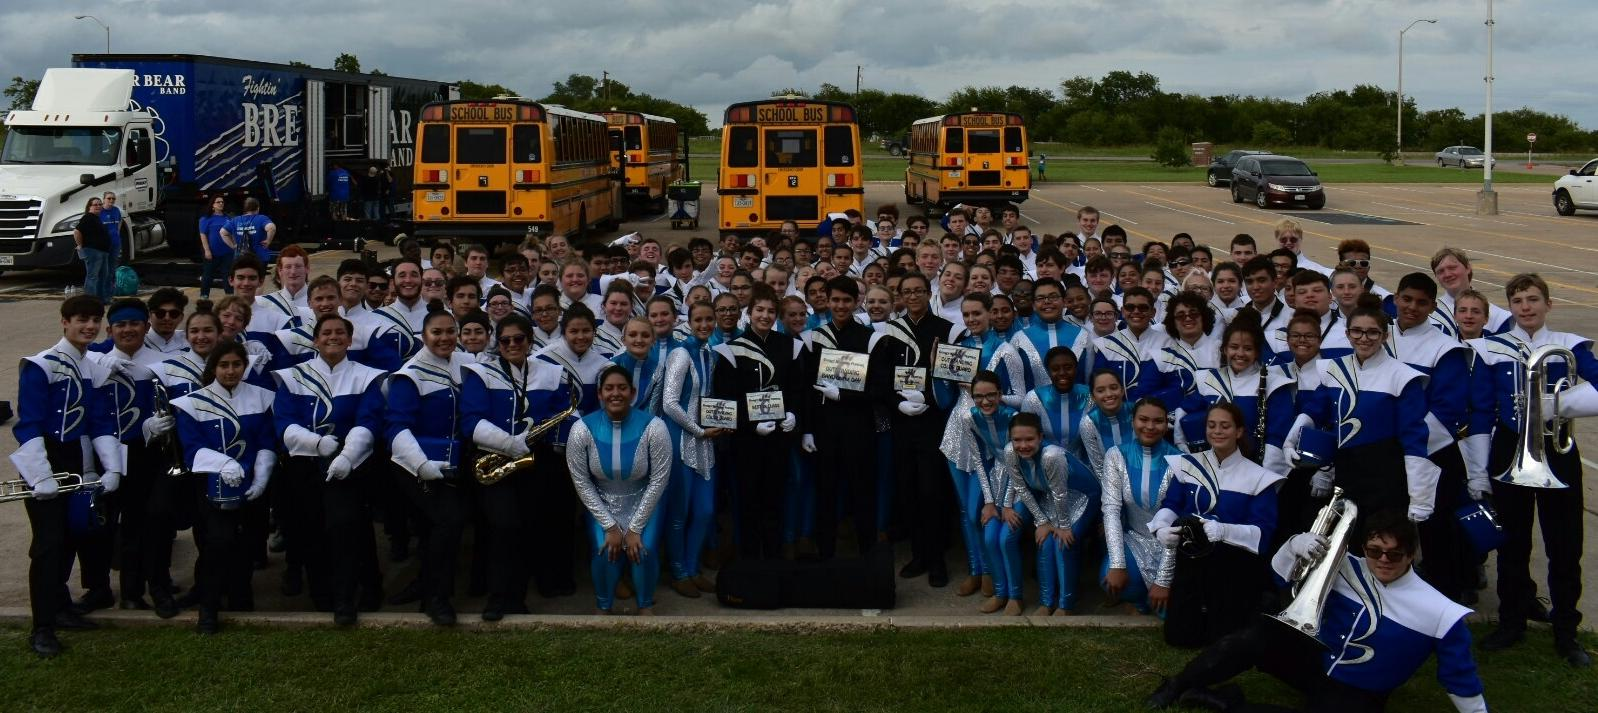 Brewer High School Band Takes First Place in First Marching Competition